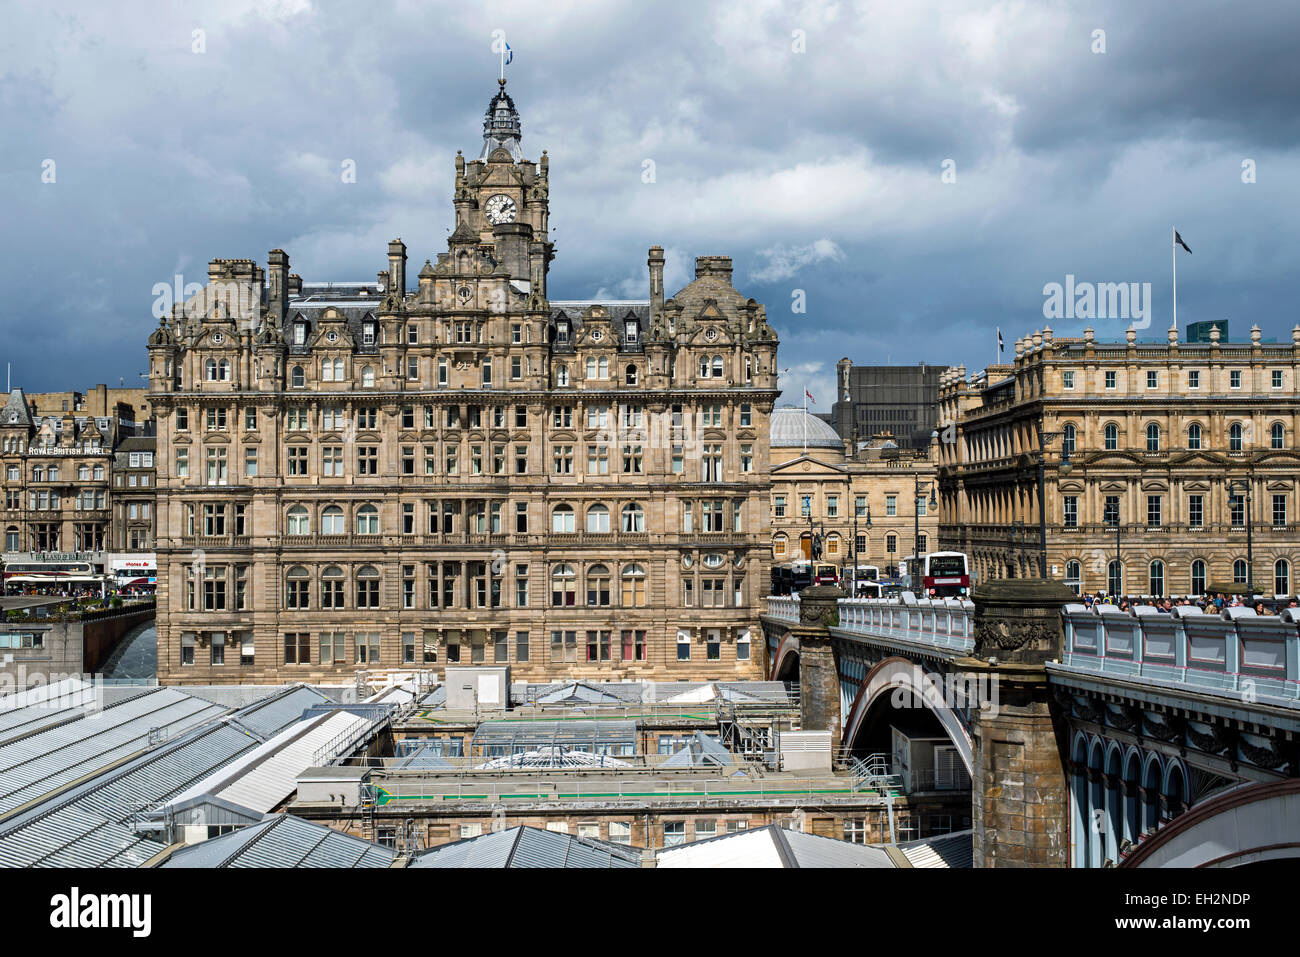 The Balmoral Hotel with North Bridge and Waverley station in the foreground. - Stock Image